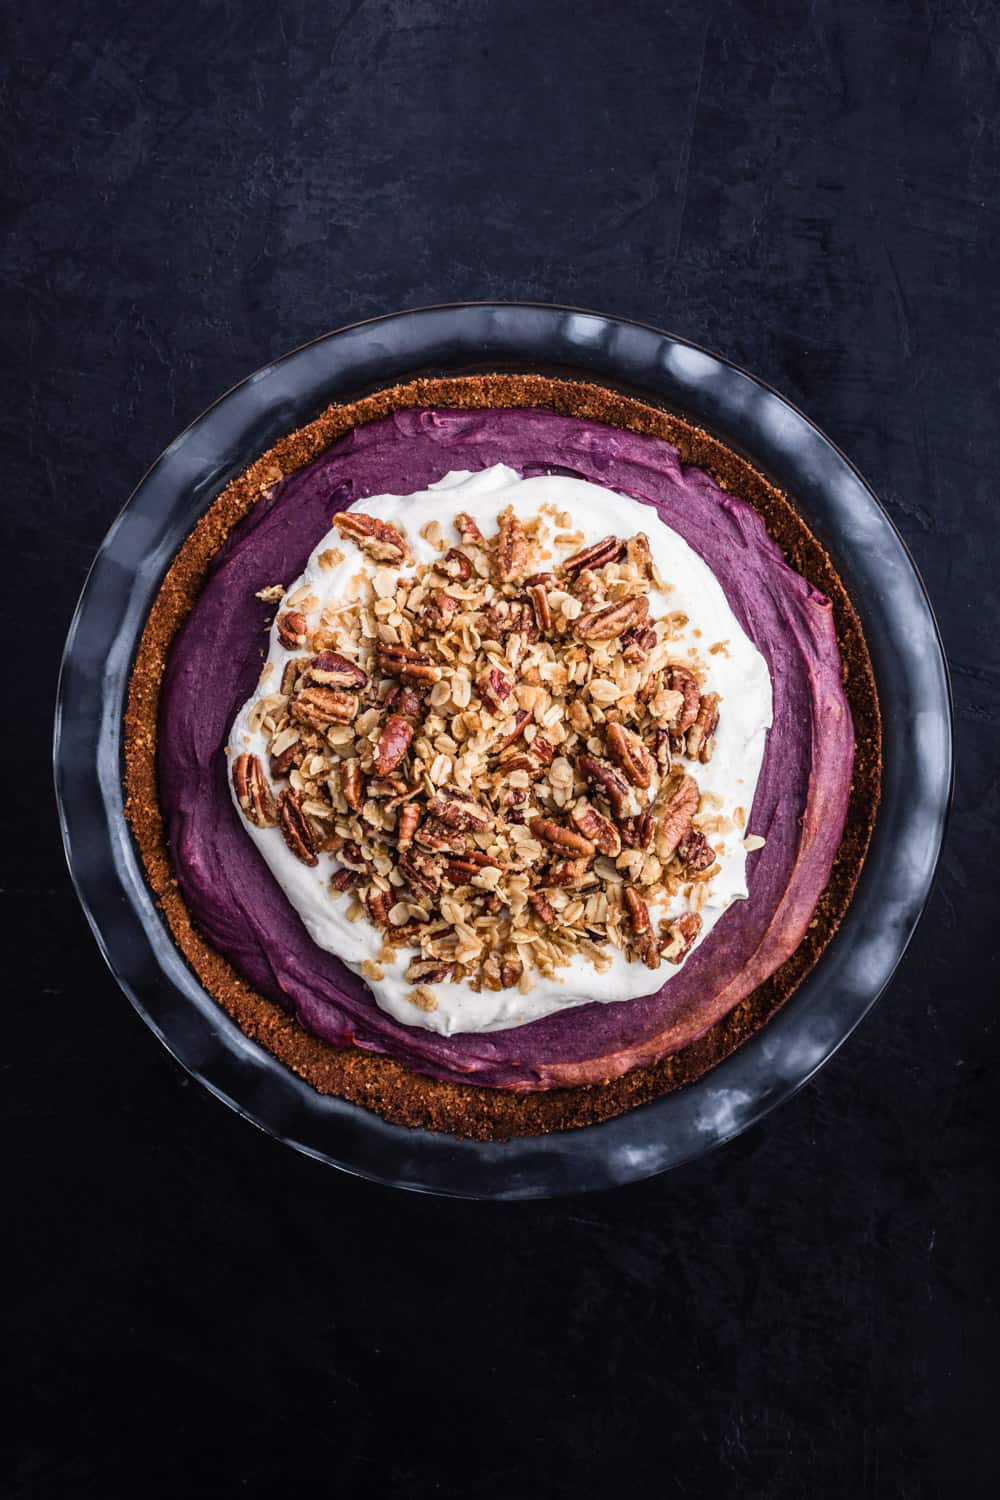 Purple sweet potato pie has been topped with whipped cream and pecan streusel on top.